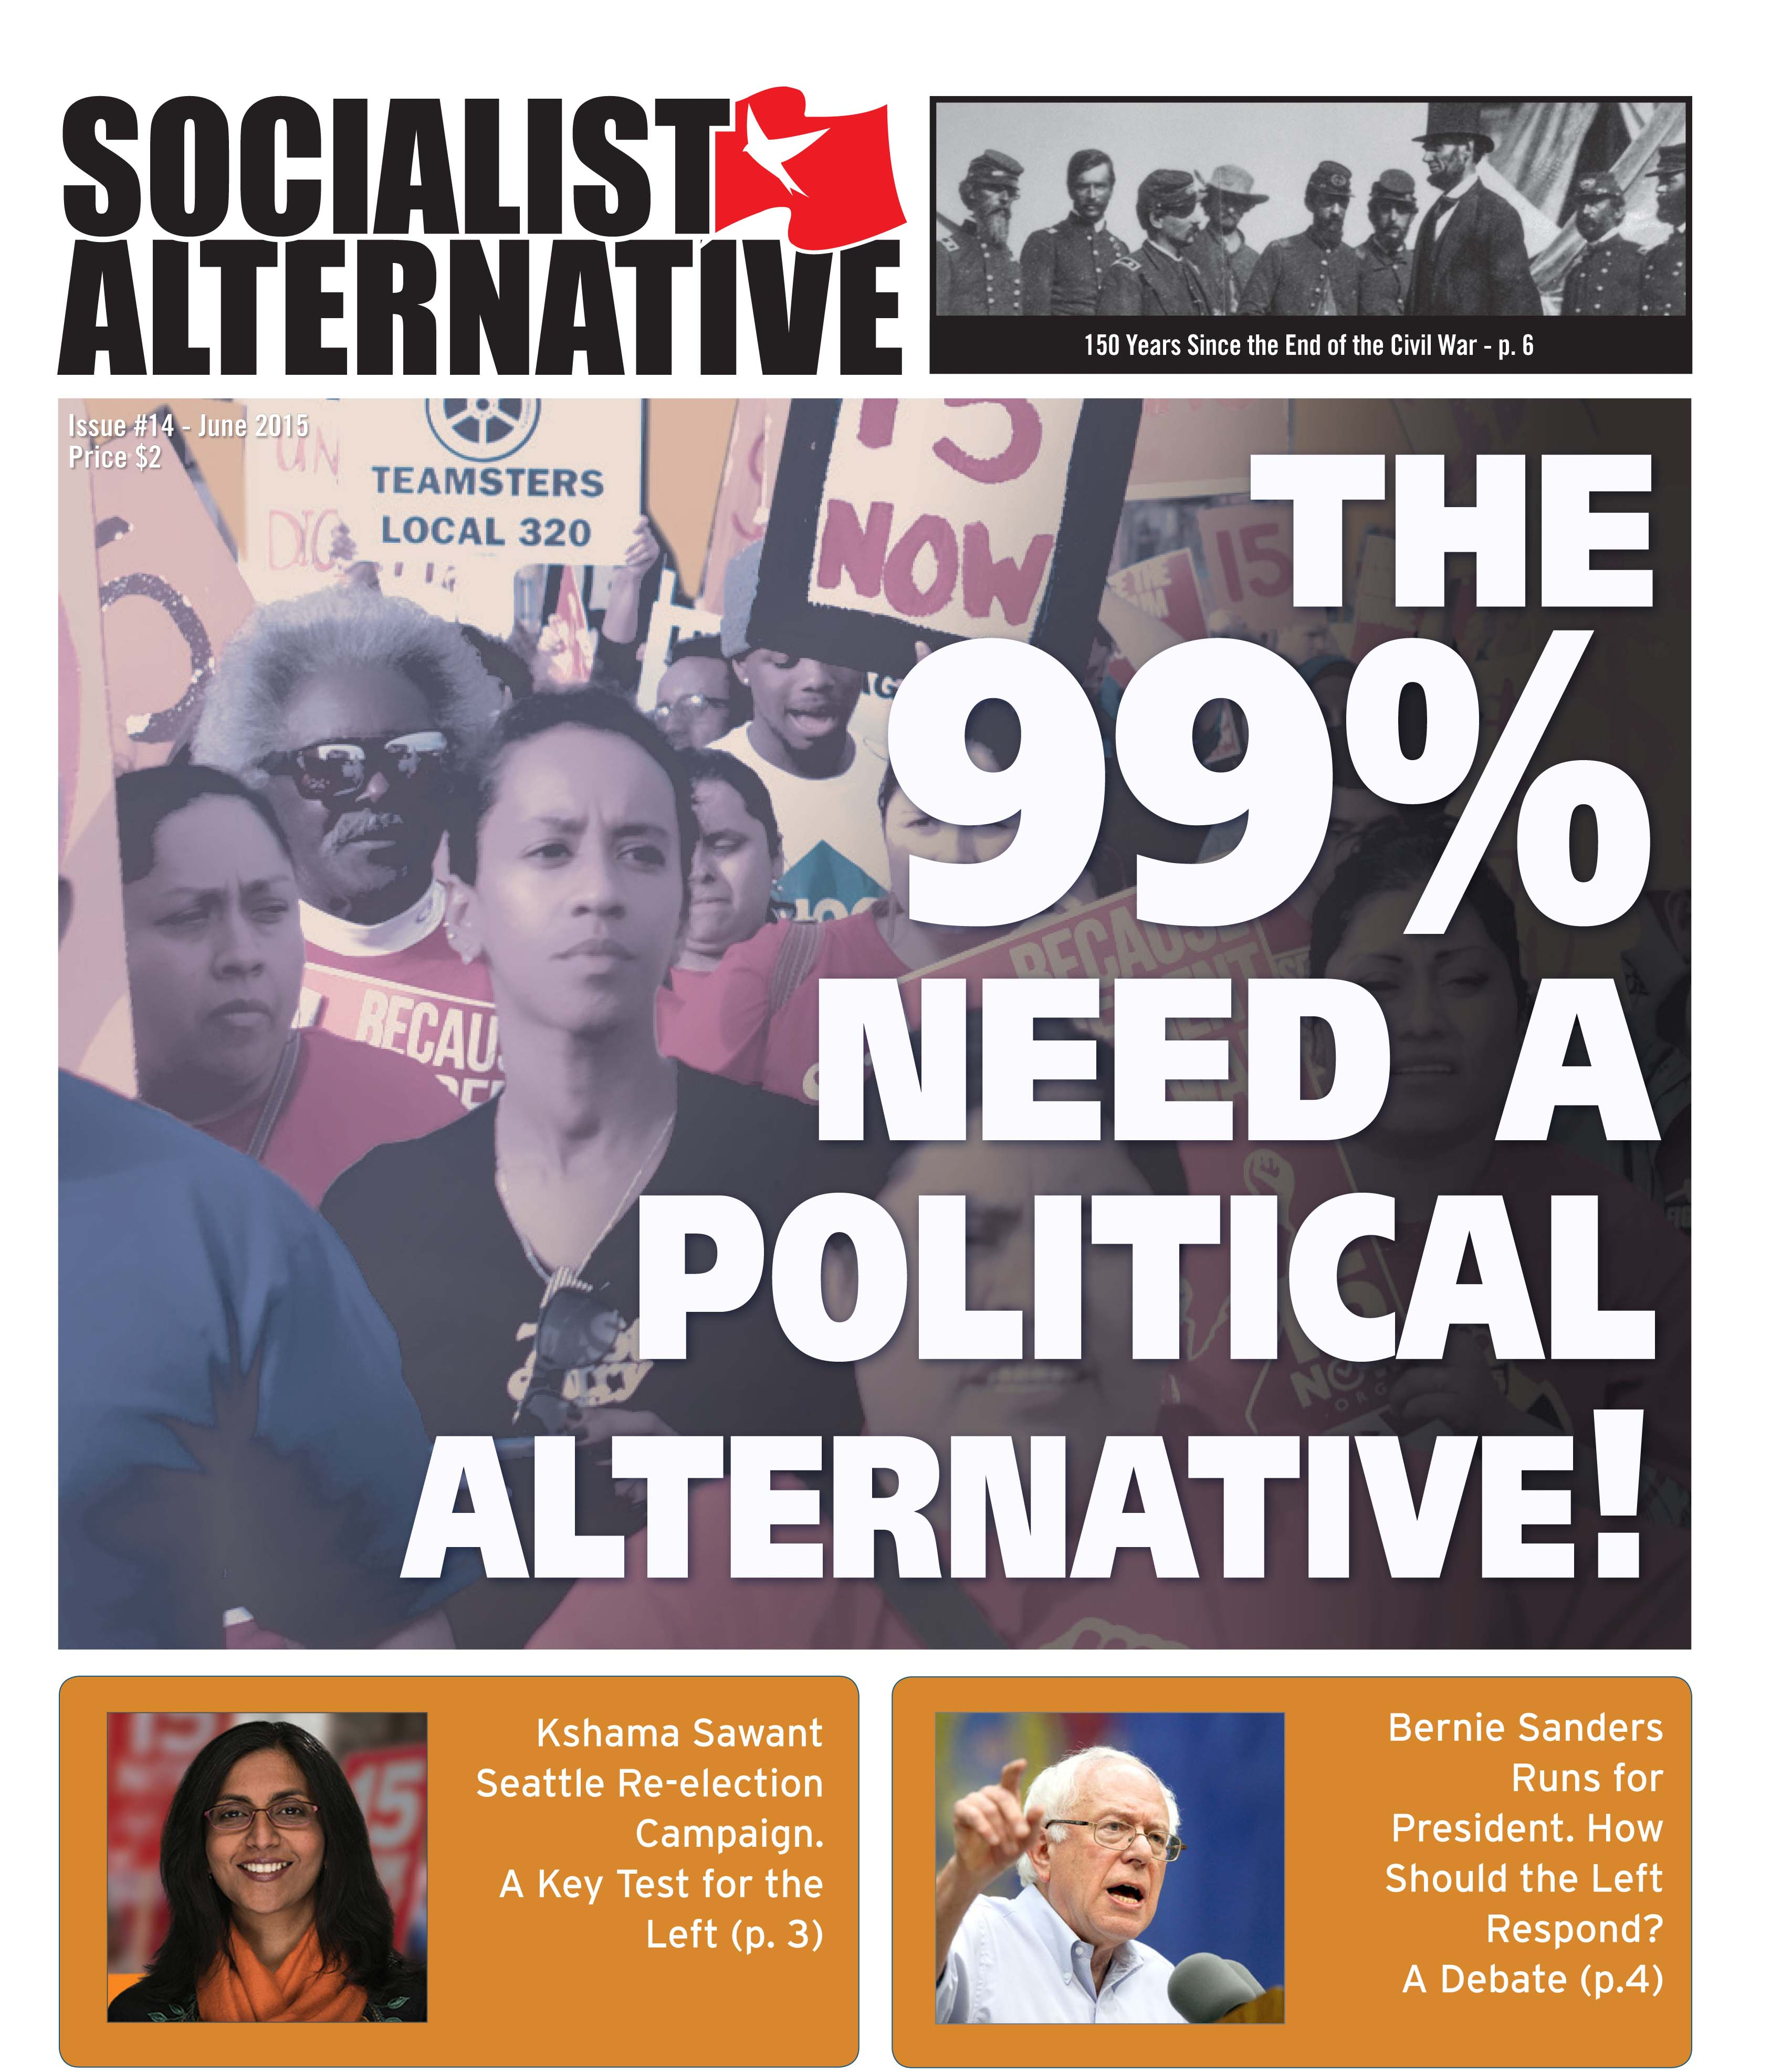 Socialist Alternative Issue #14